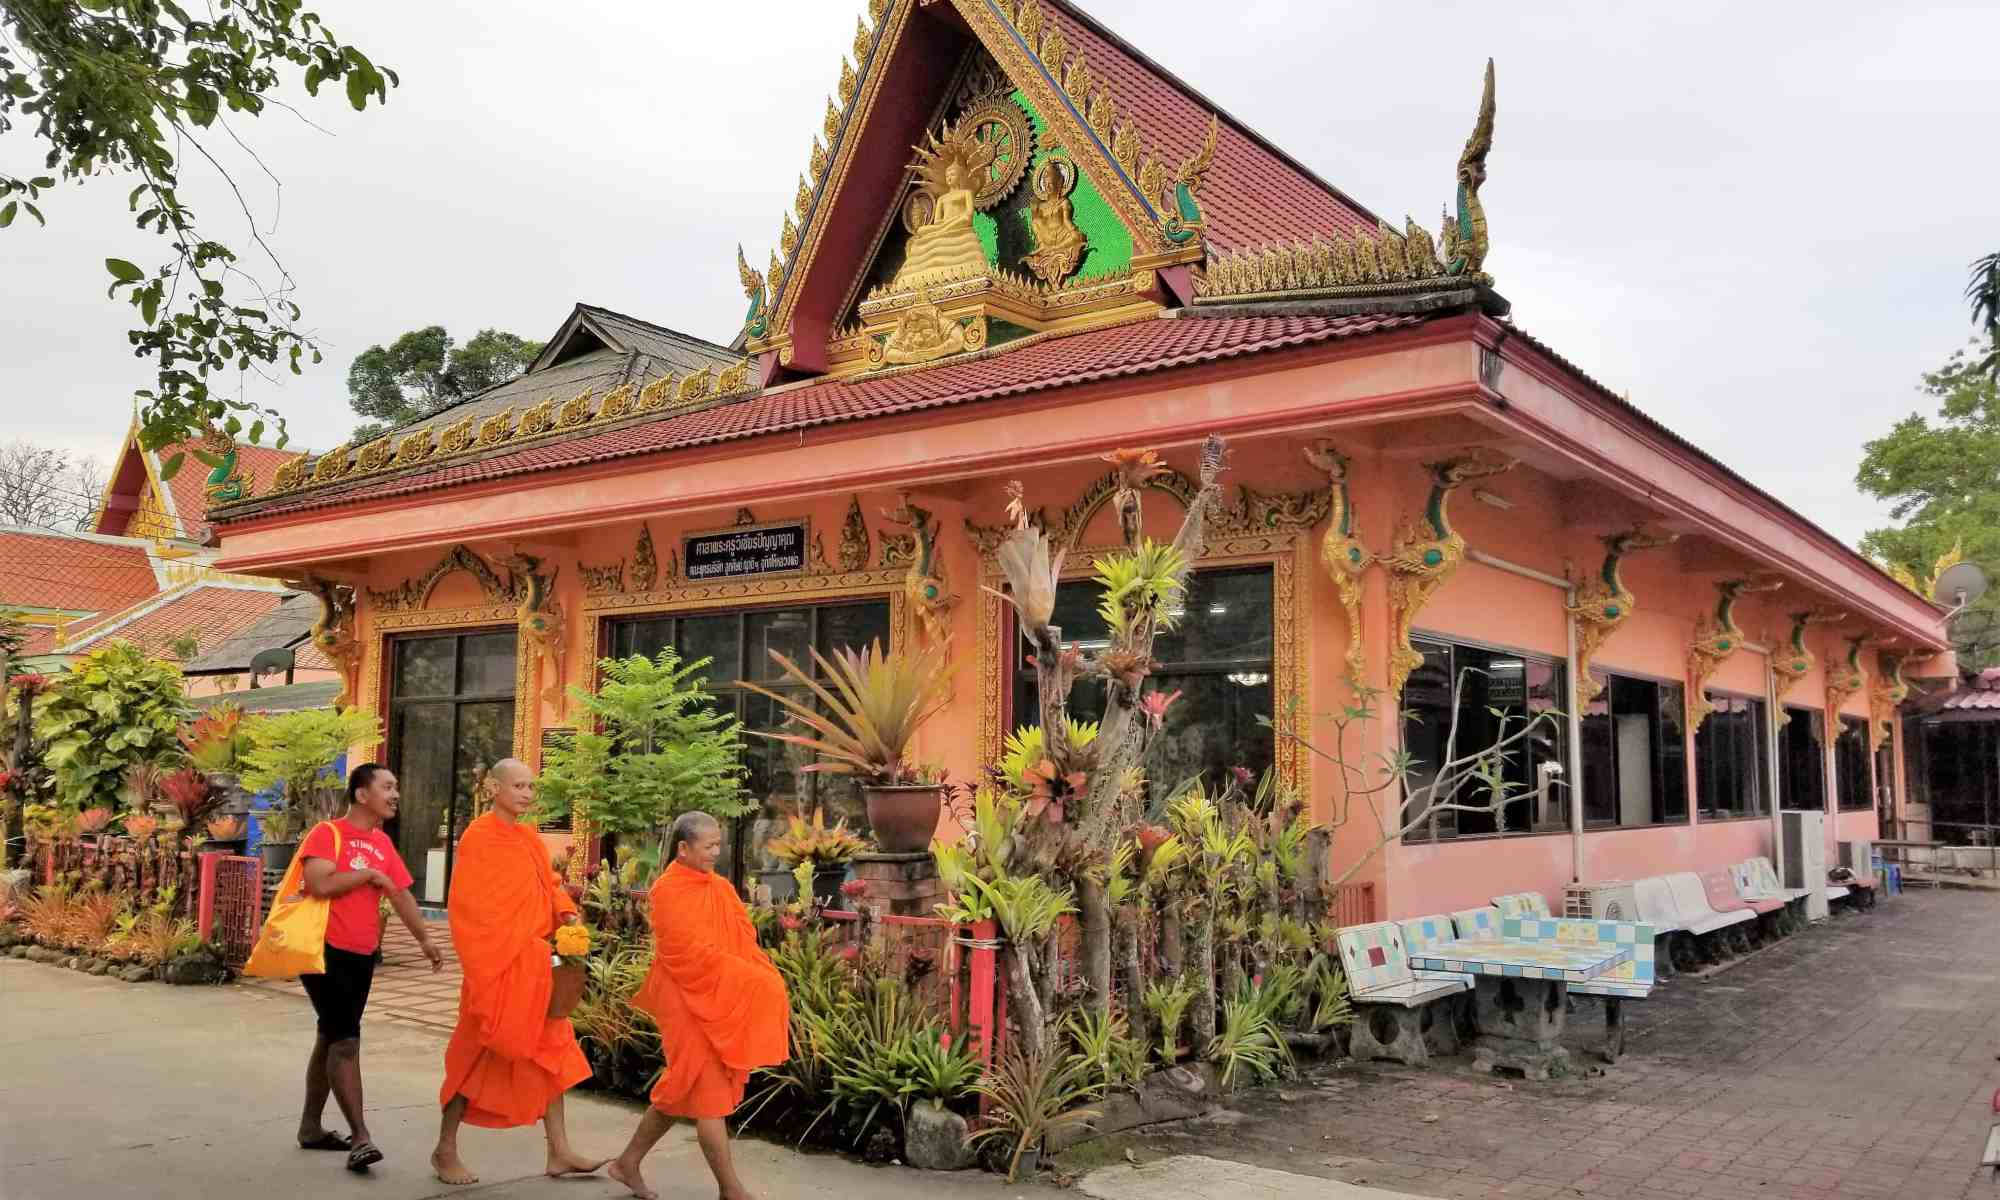 image-of-monks-at-buddhist-temple-in-thailand